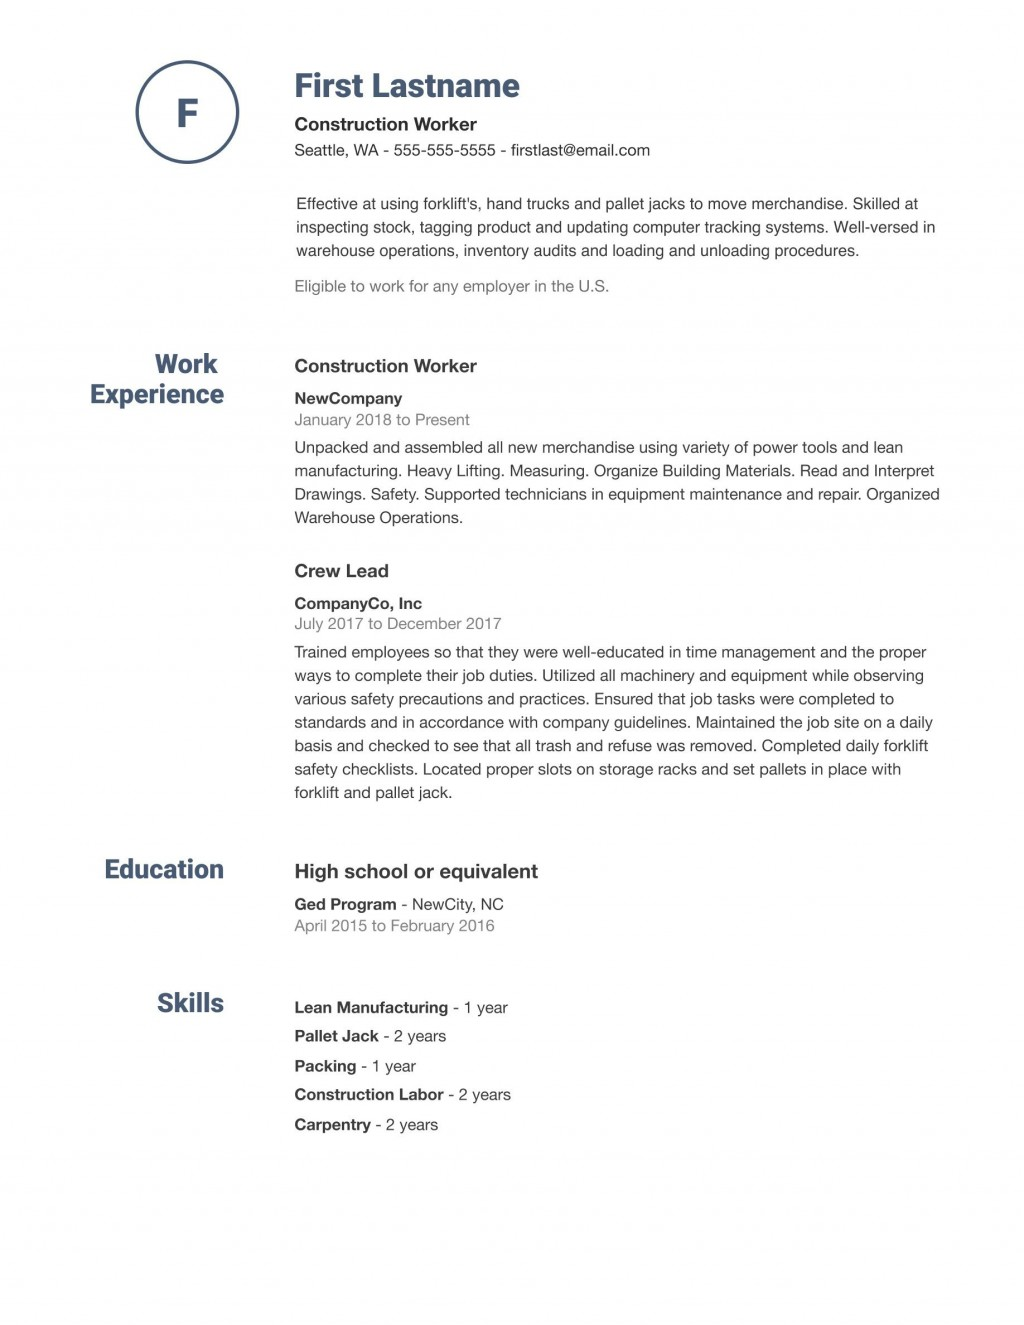 007 Frightening Basic Resume Template Free Design  Easy Download Word Australia DocLarge